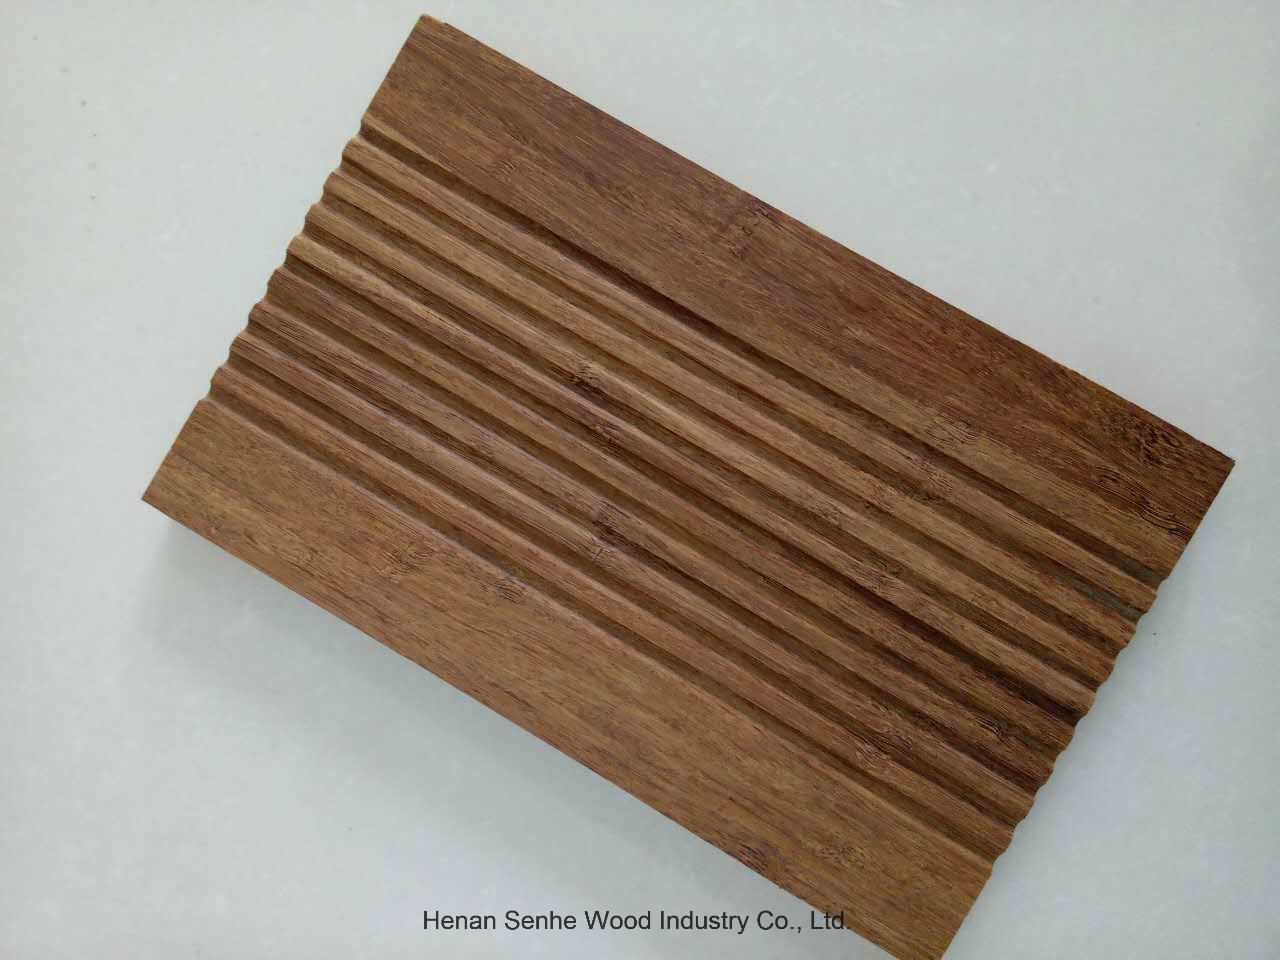 Strand Woven Bamboo Flooring, Outdoor Bamboo Flooring, Light Carbonized 18mm